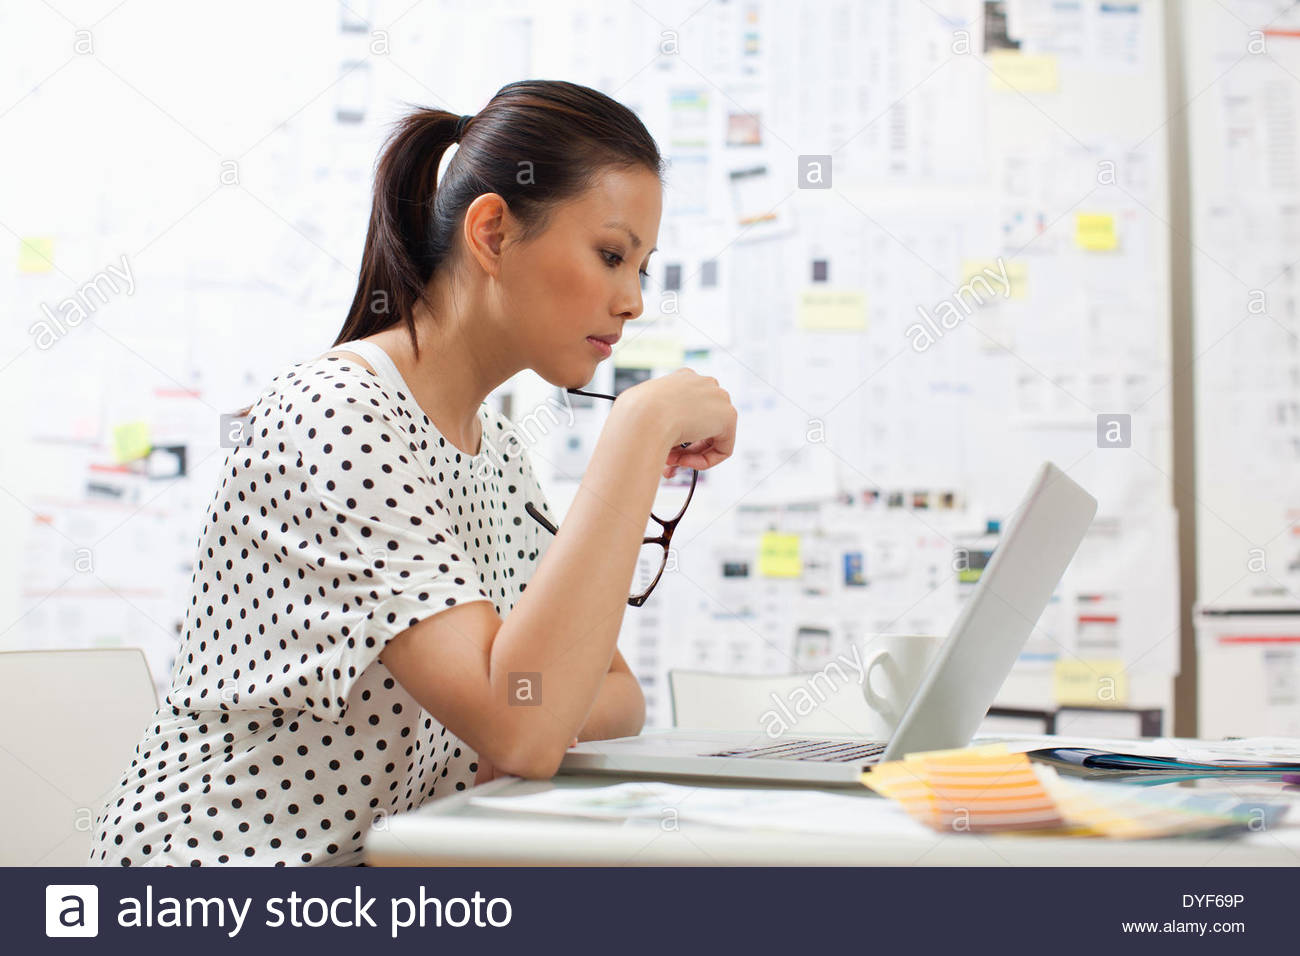 Serious businesswoman looking down laptop in office Photo Stock